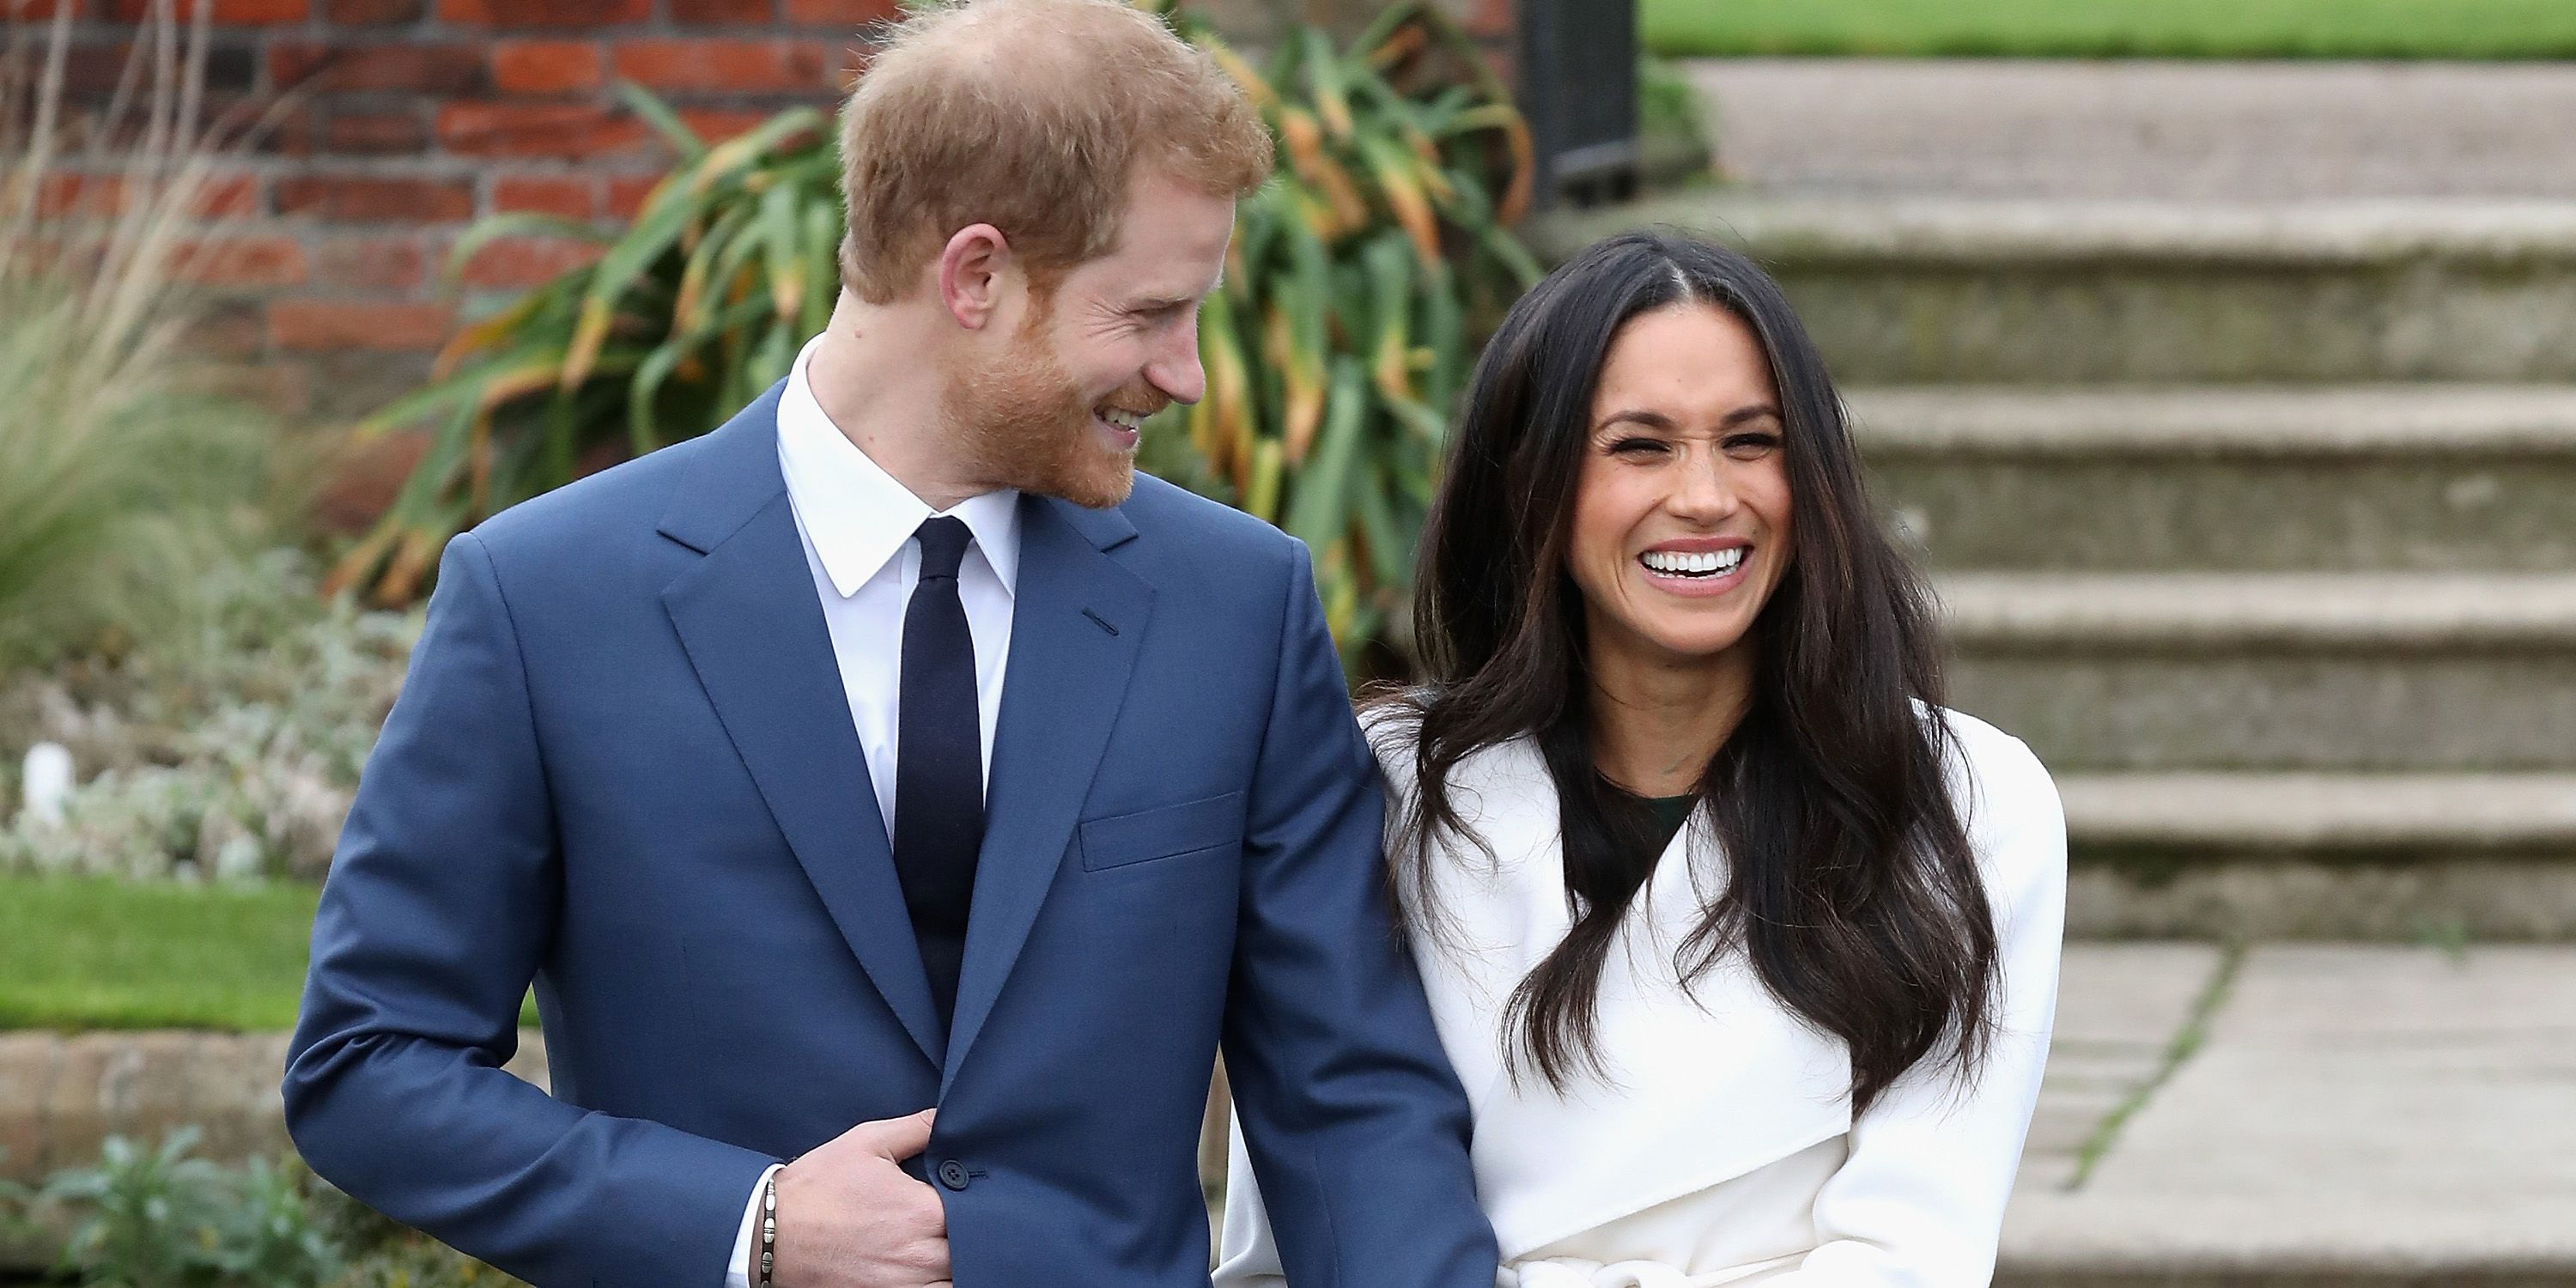 Forum on this topic: The adorable Harry and Meghan moment you , the-adorable-harry-and-meghan-moment-you/